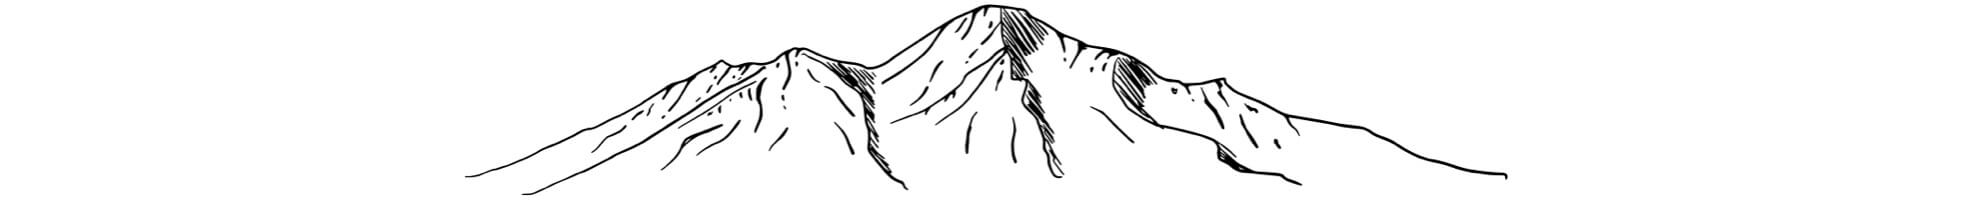 moutain drawing.jpg